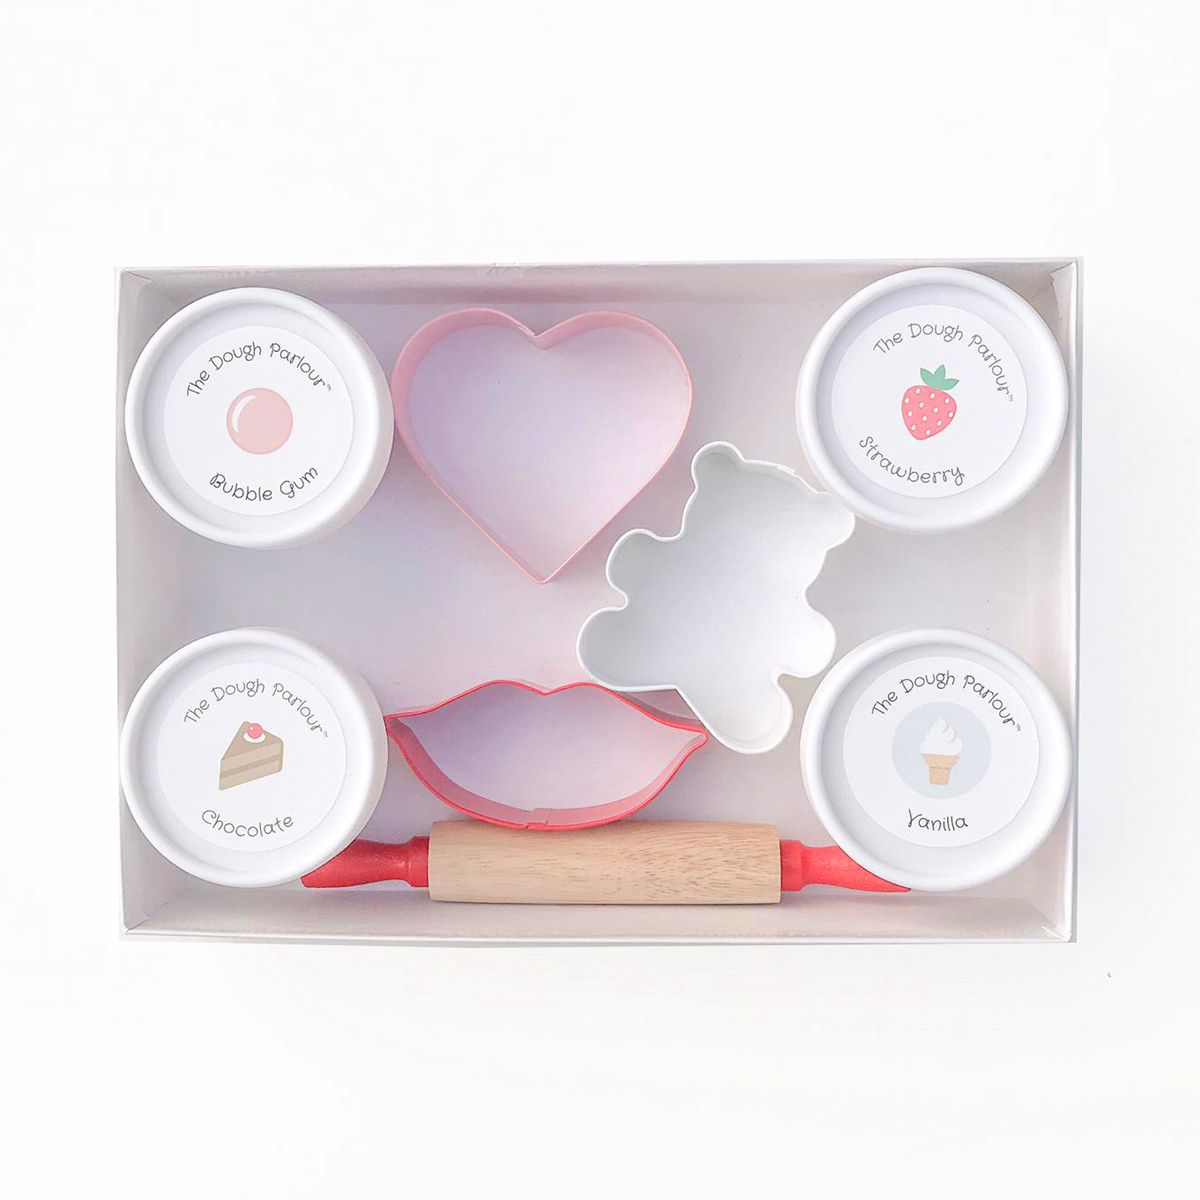 The Dough Parlour Valentine's Day Scented Modeling Dough Set